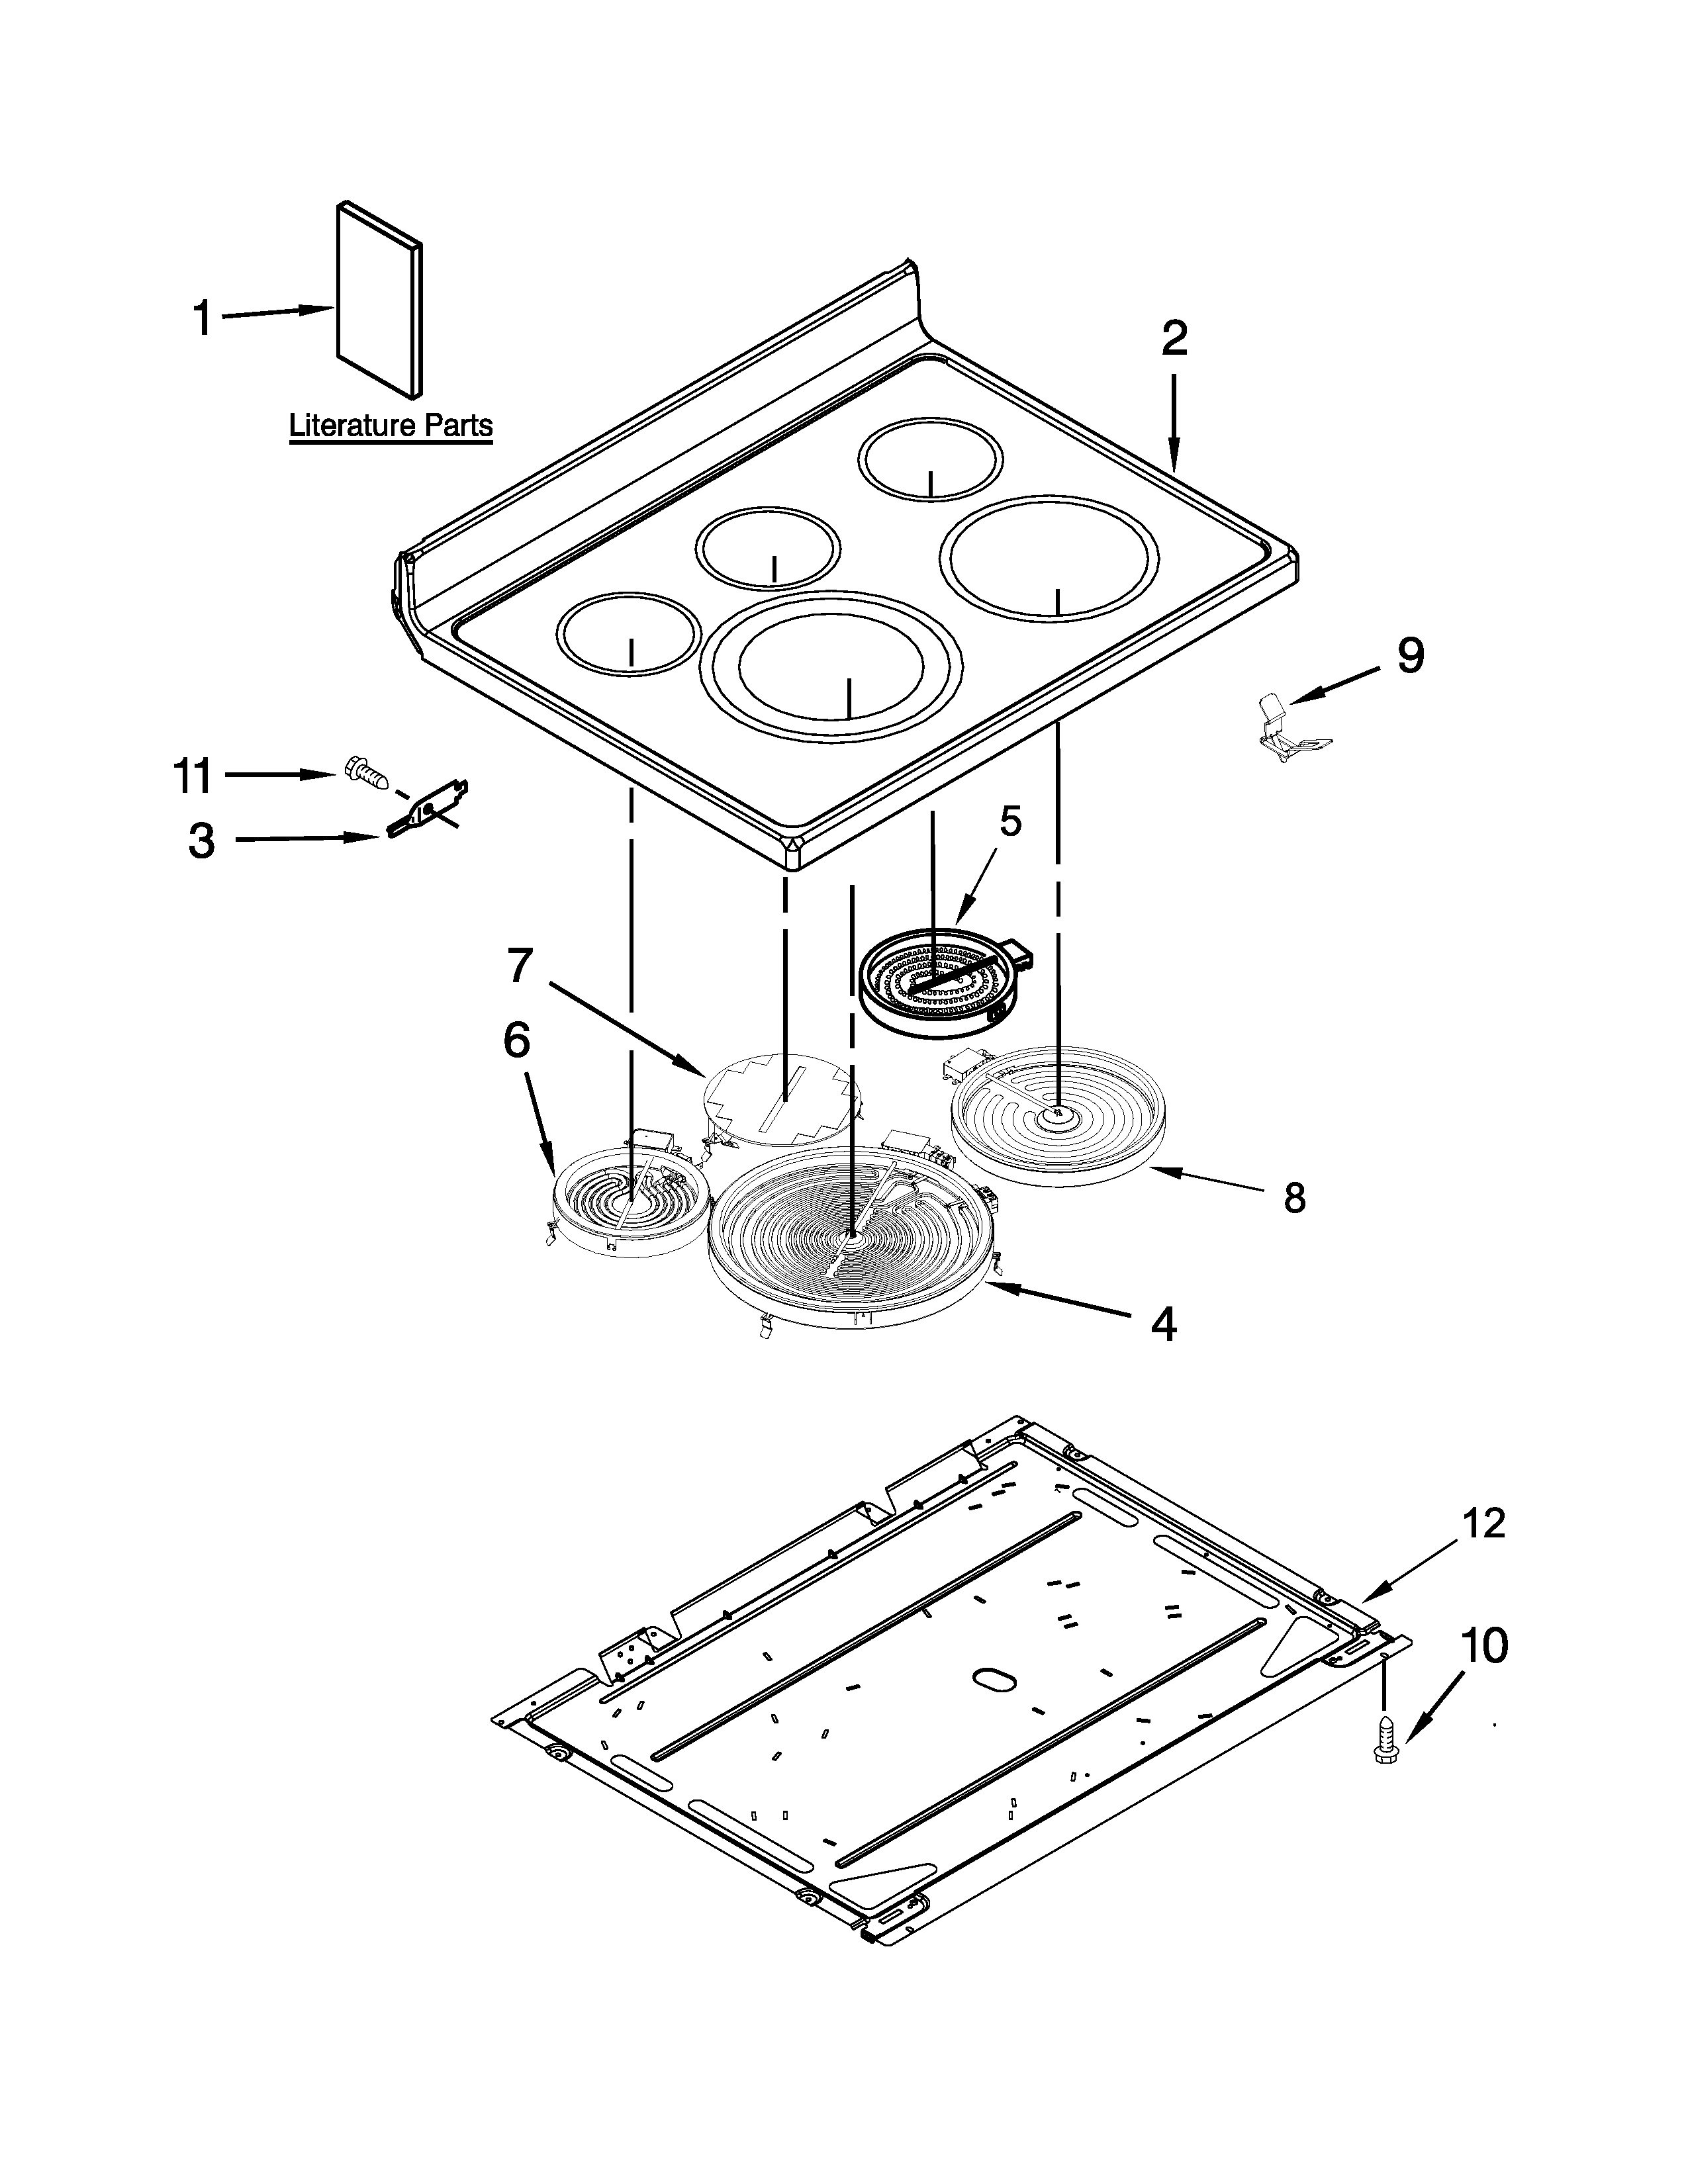 Maytag YMER8775BS0 cooktop parts diagram